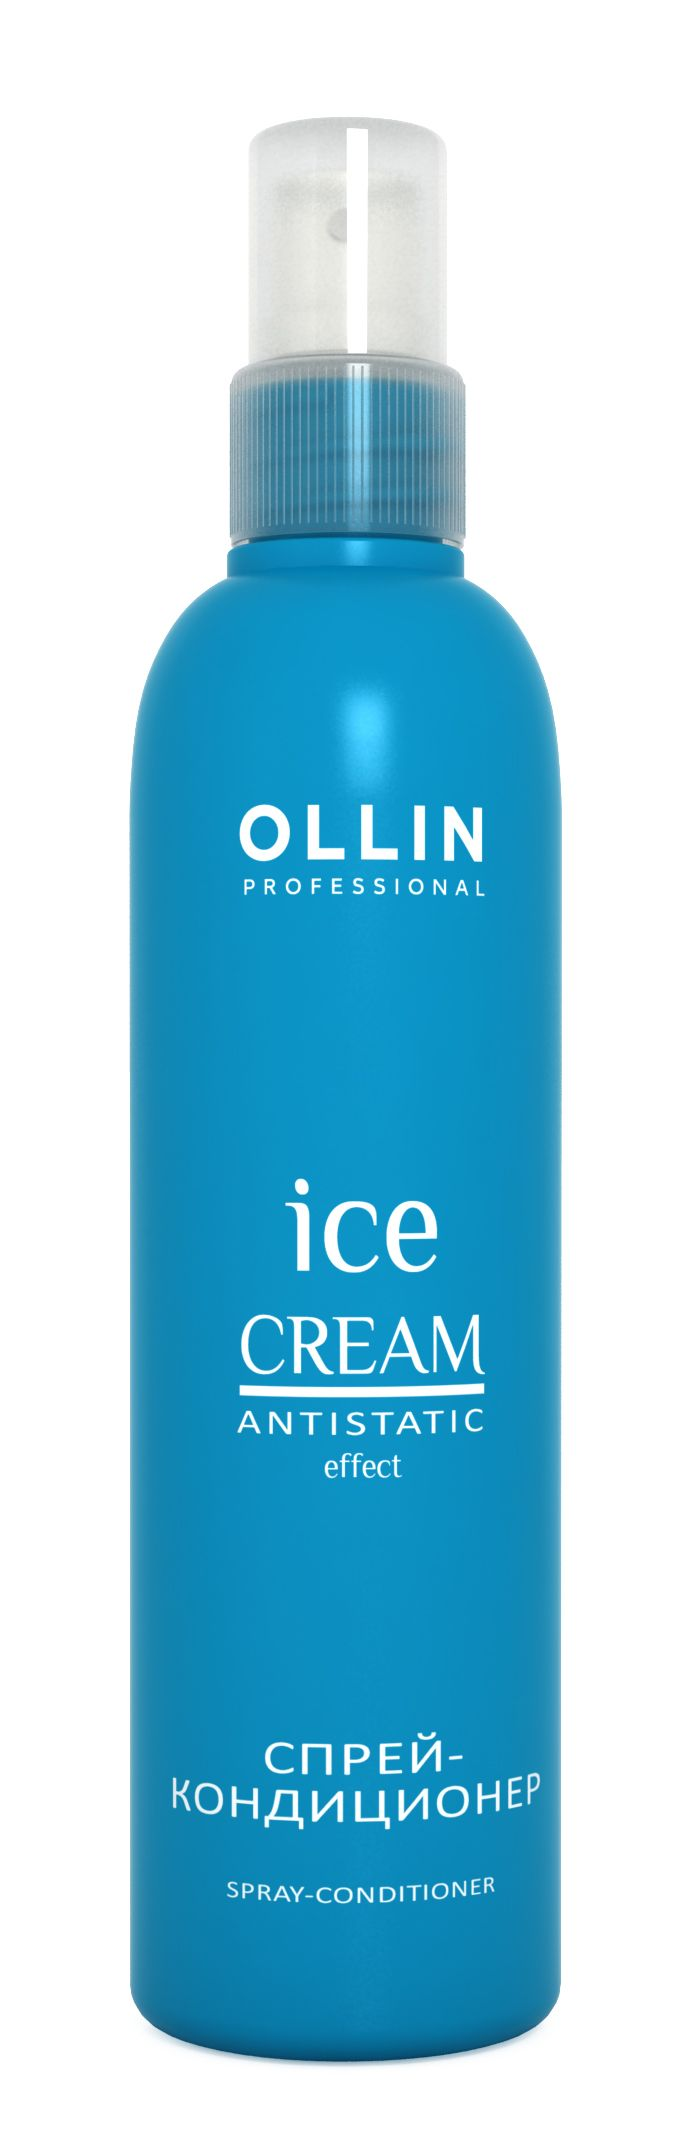 Ollin Professional Ice Cream Spray Conditioner – Спрей-кондиционер 250 мл